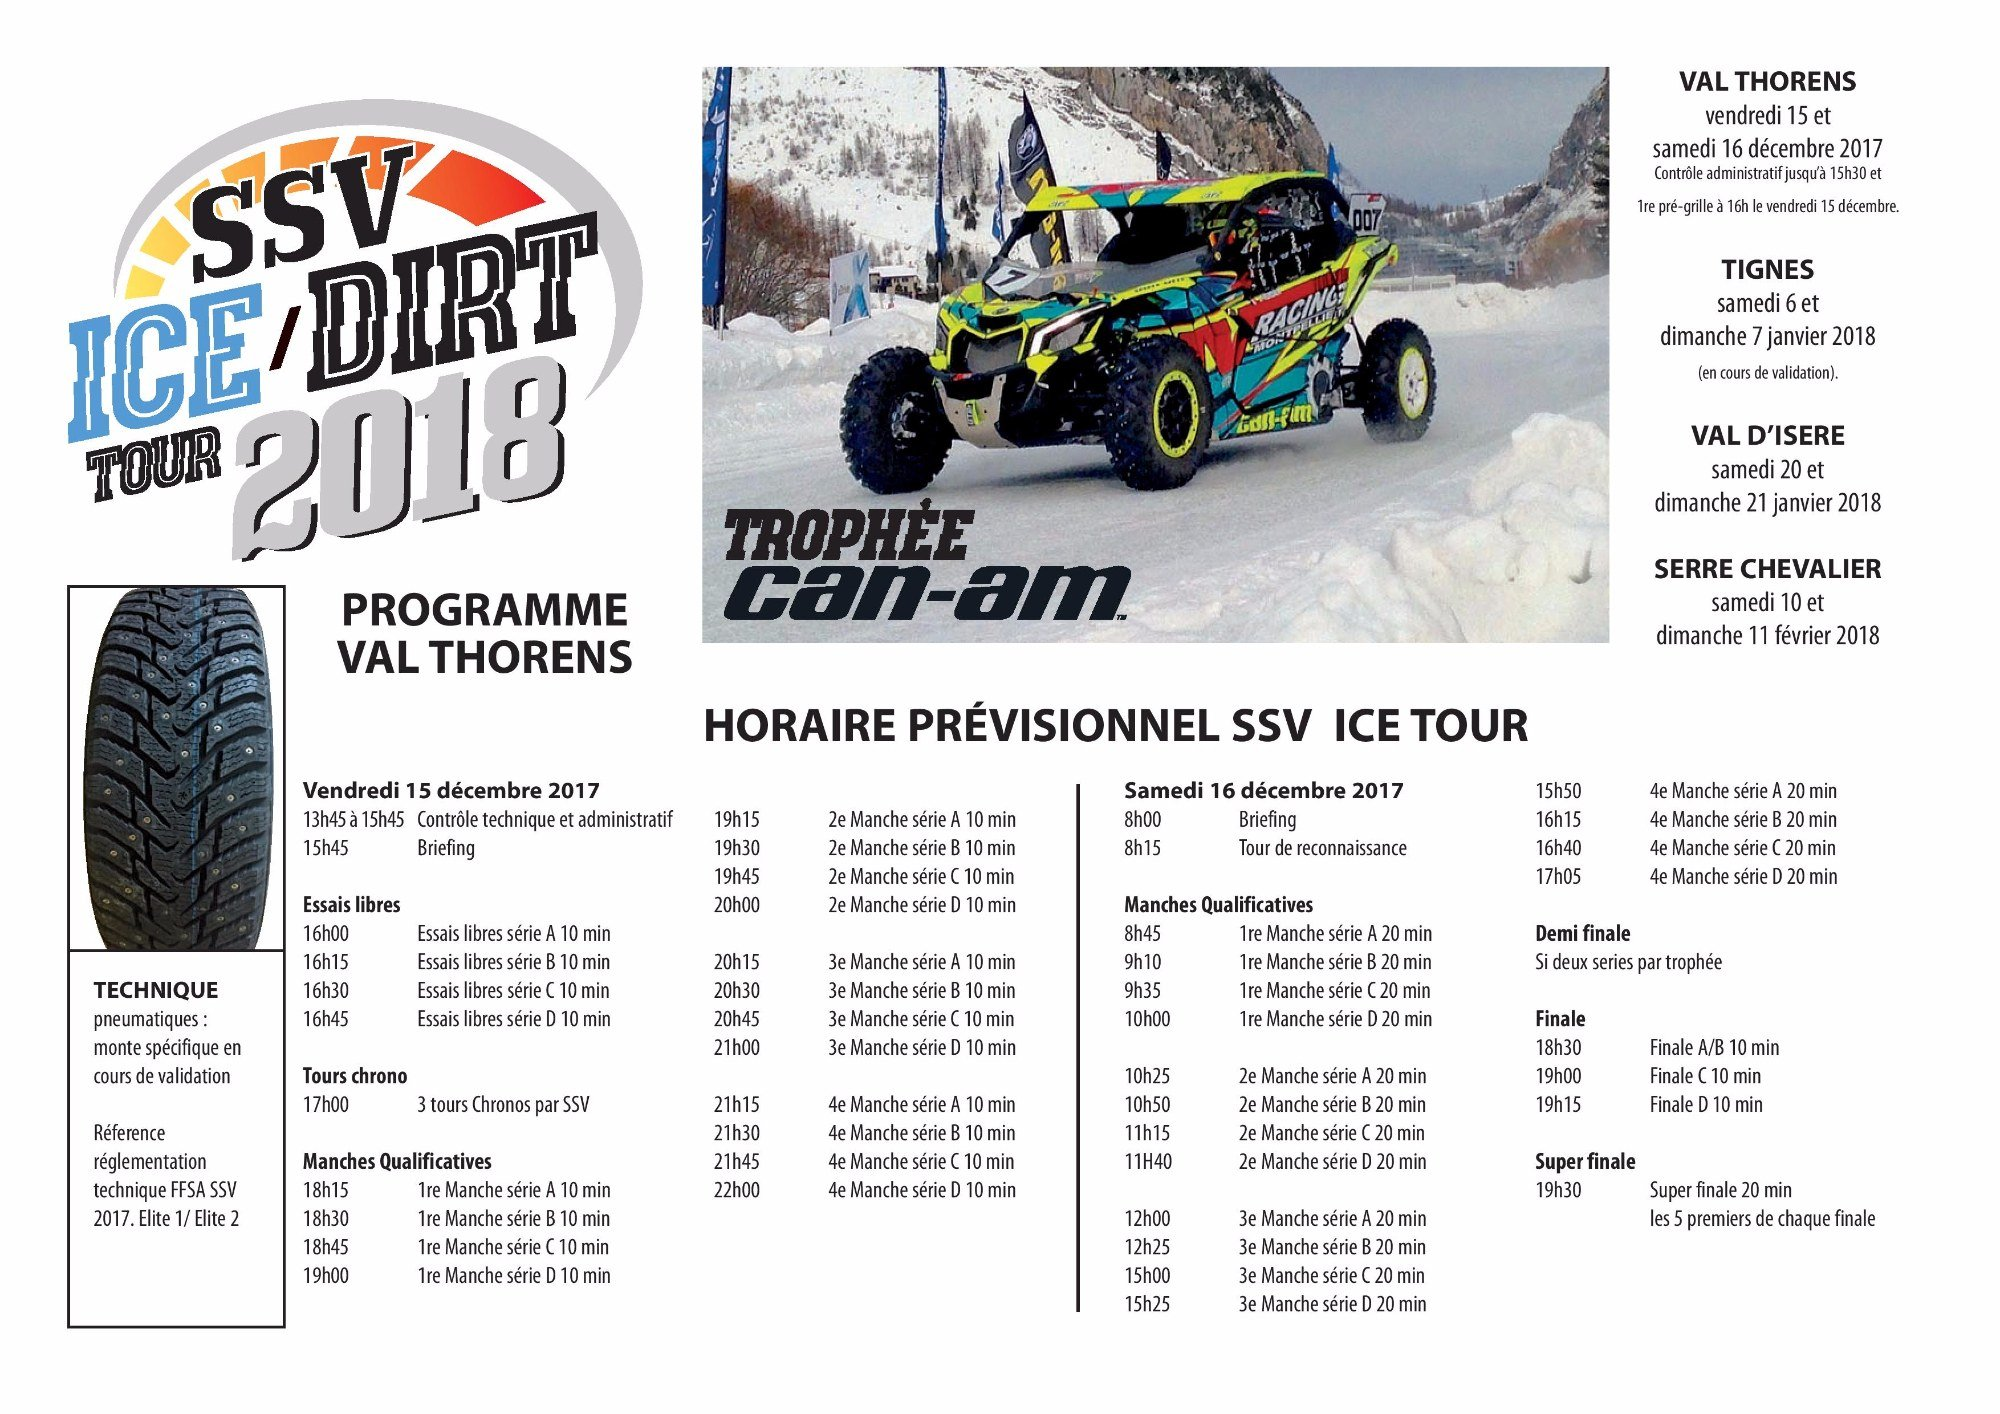 SSV ICE/DIRT TOUR 2018